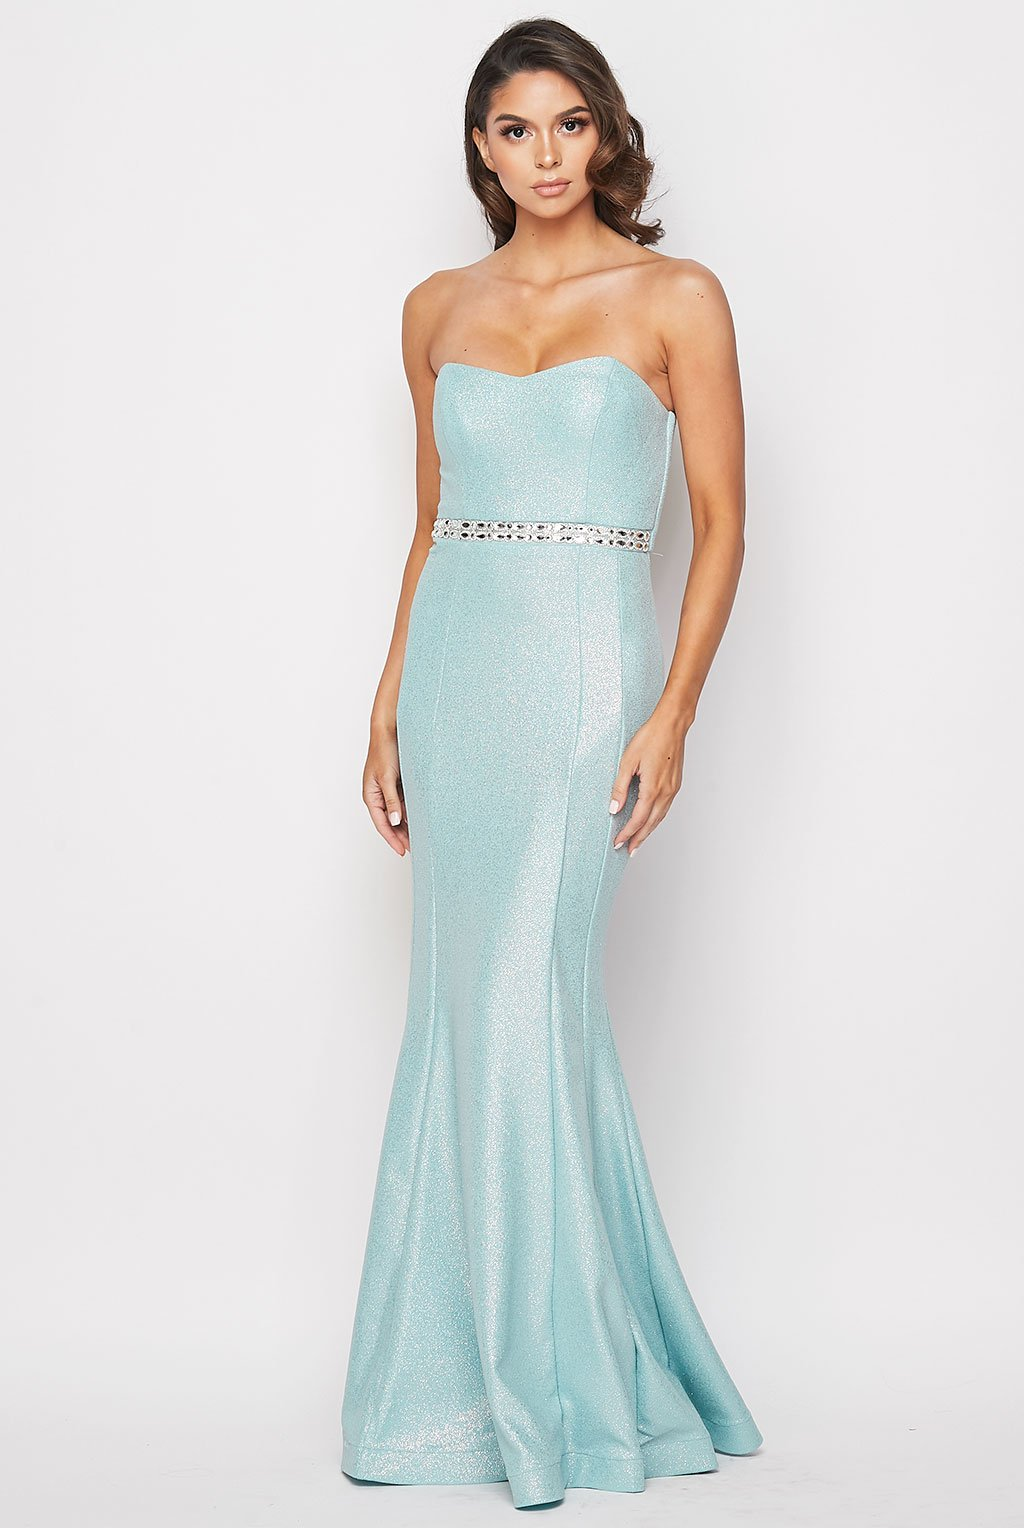 Teeze Me | Glitter Knit Strapless Mermaid Gown | Mint